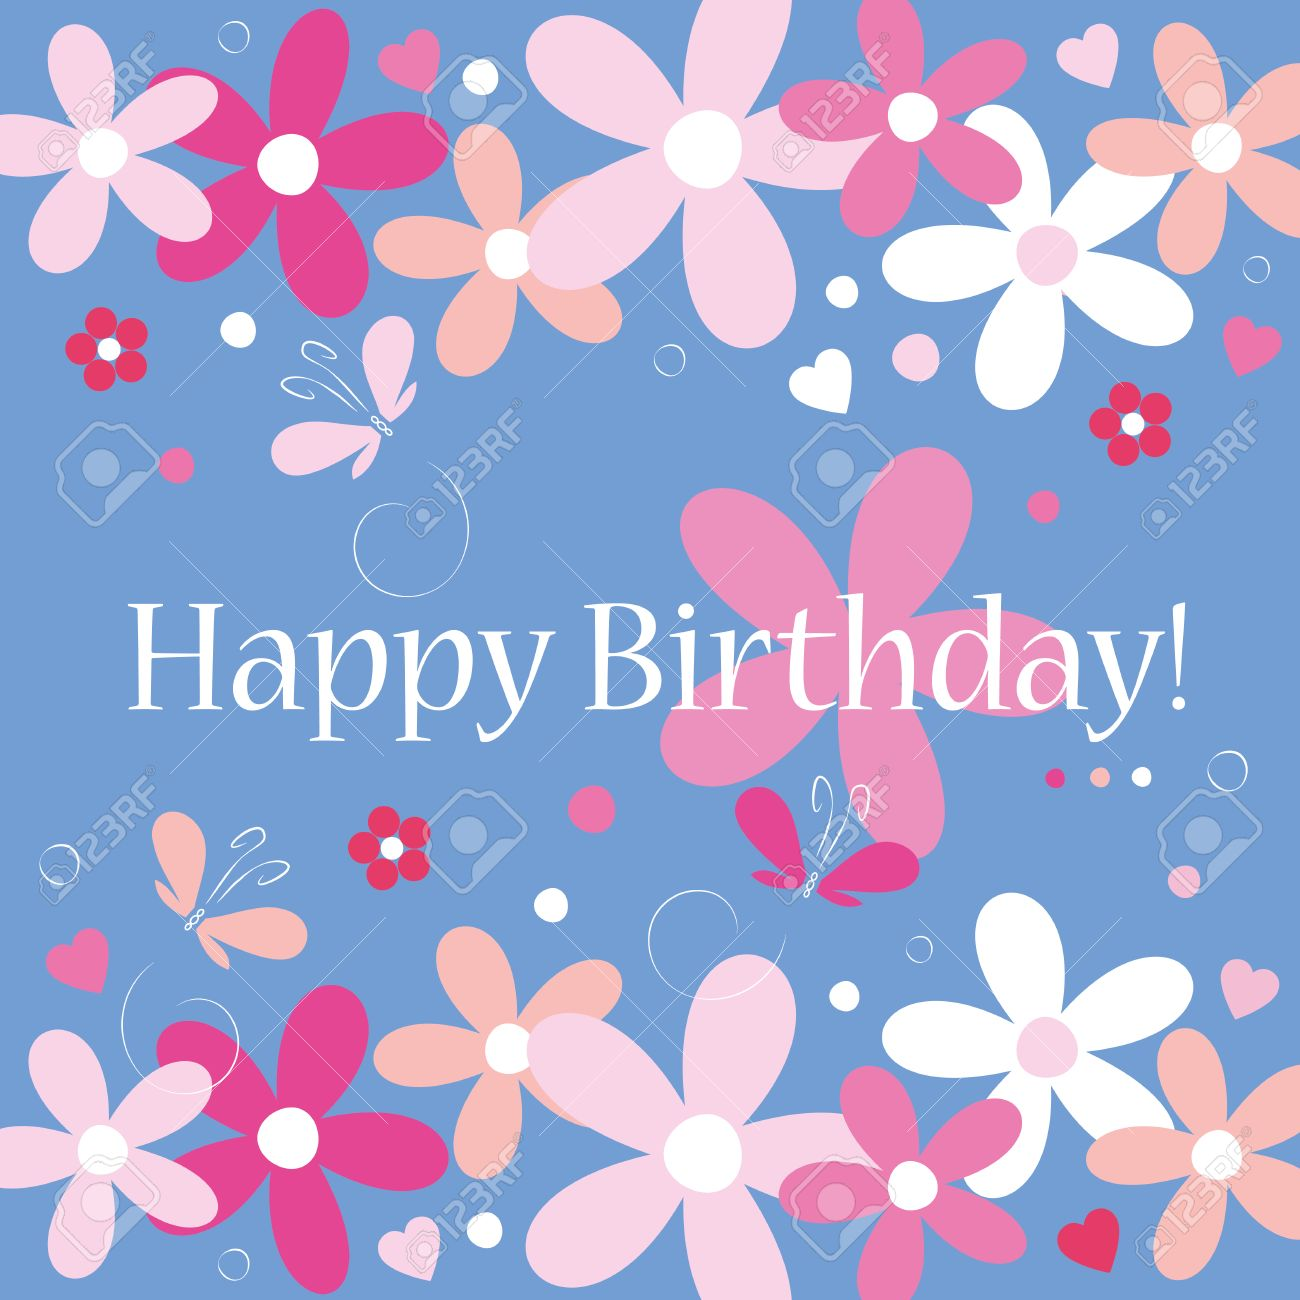 Blue Hearts Flowers And Butterflies Happy Birthday Card Royalty Free